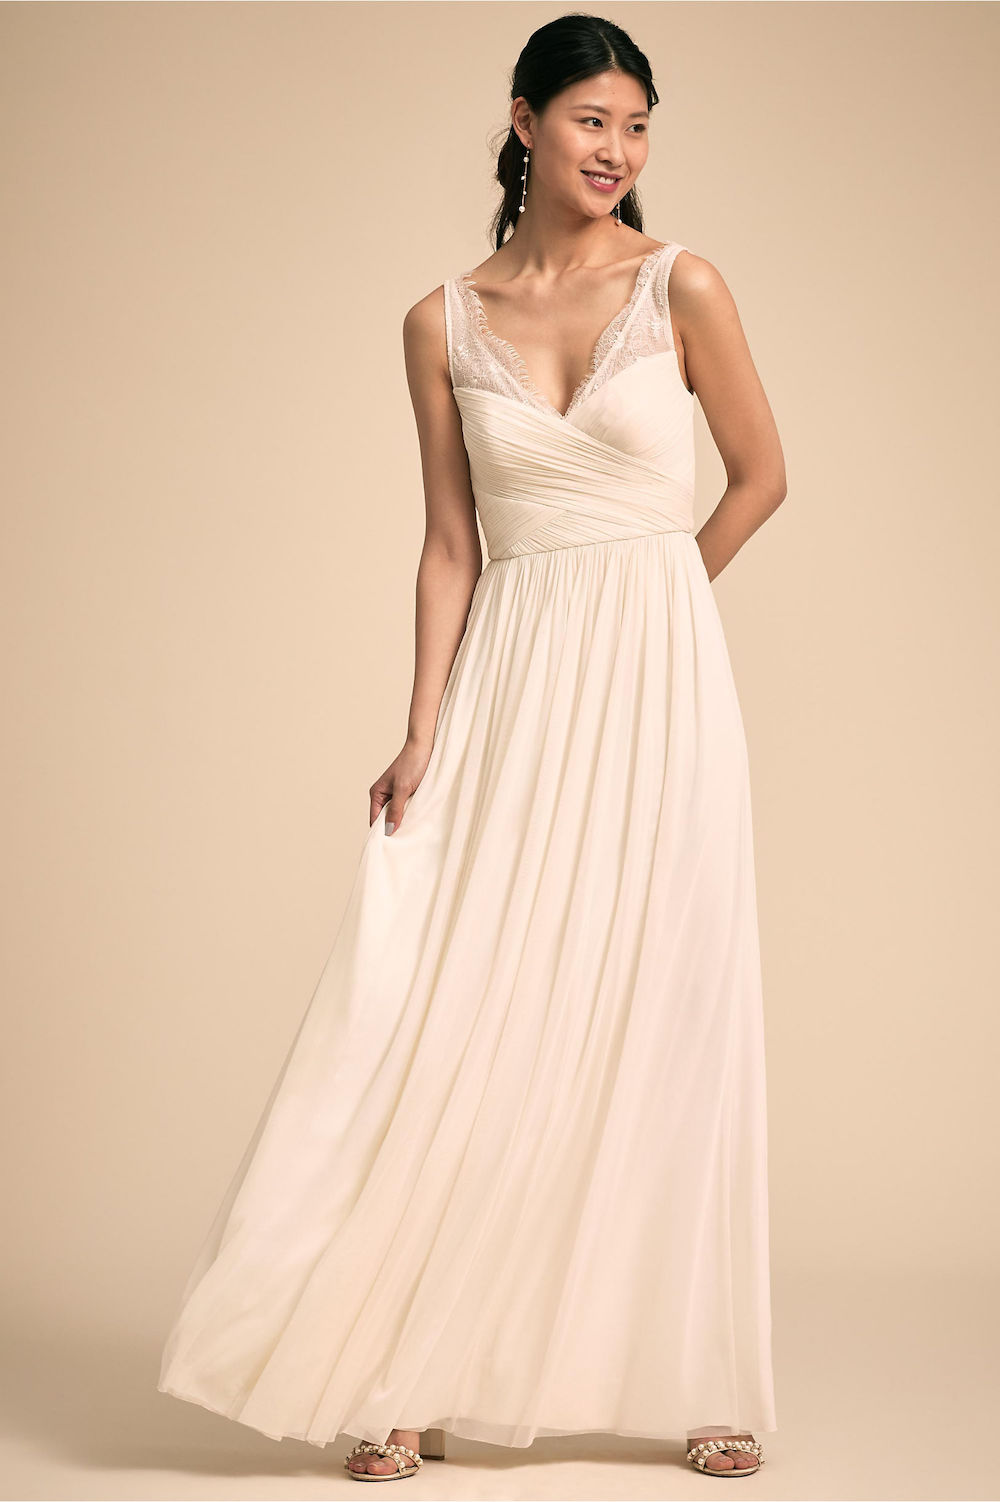 b896cecc34e Elegantly Chic BHLDN Bridesmaids Dresses that Can Be Worn as Wedding ...